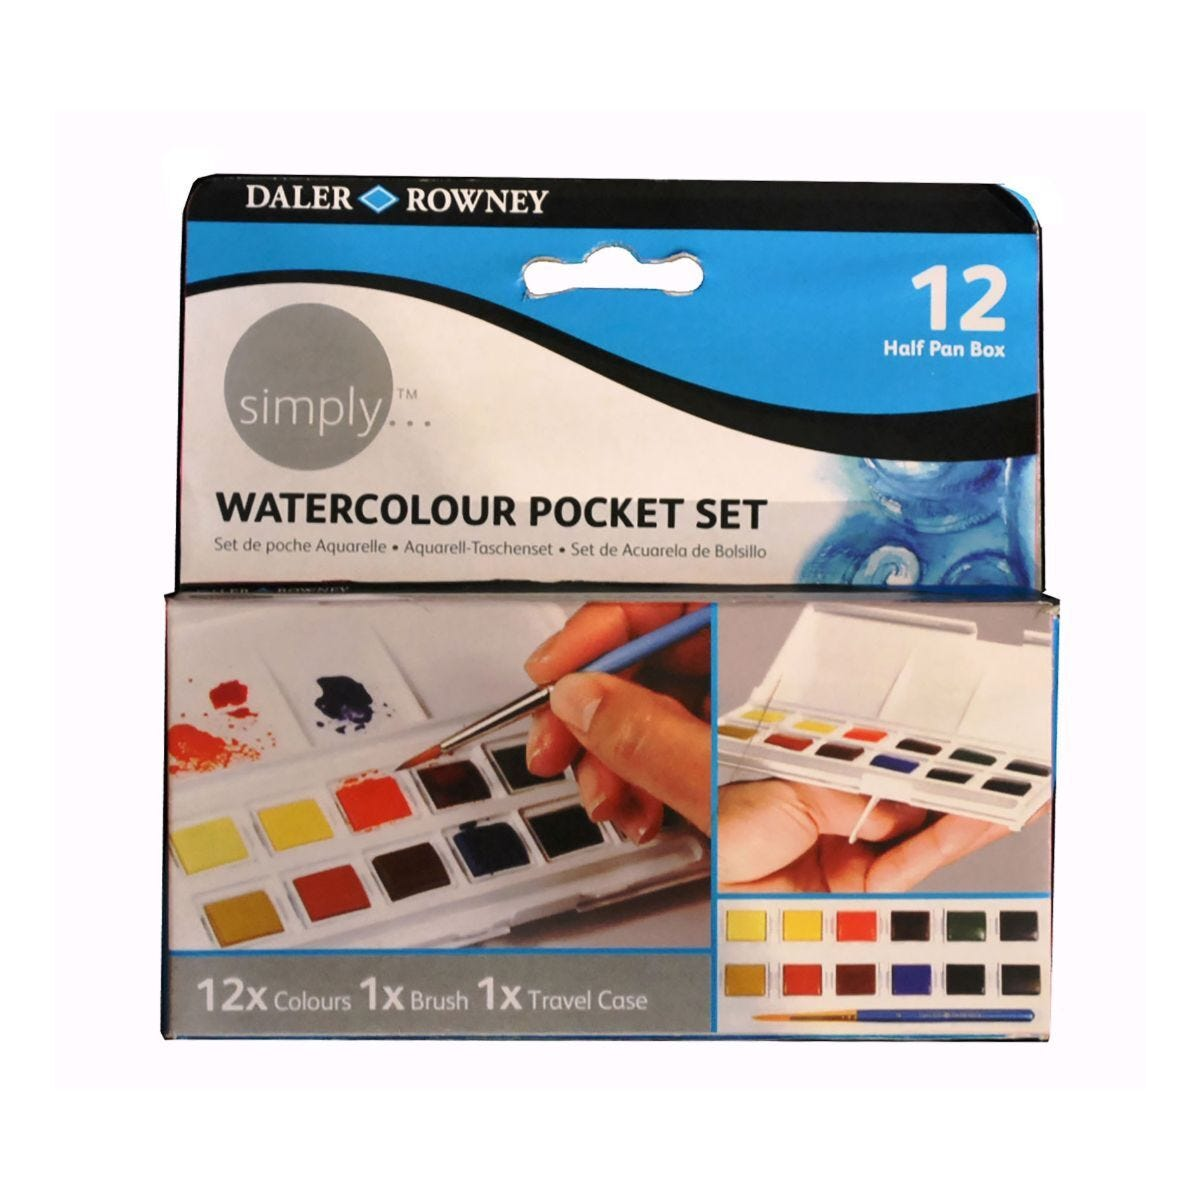 Daler Rowney Simply Watercolour Pocket Set